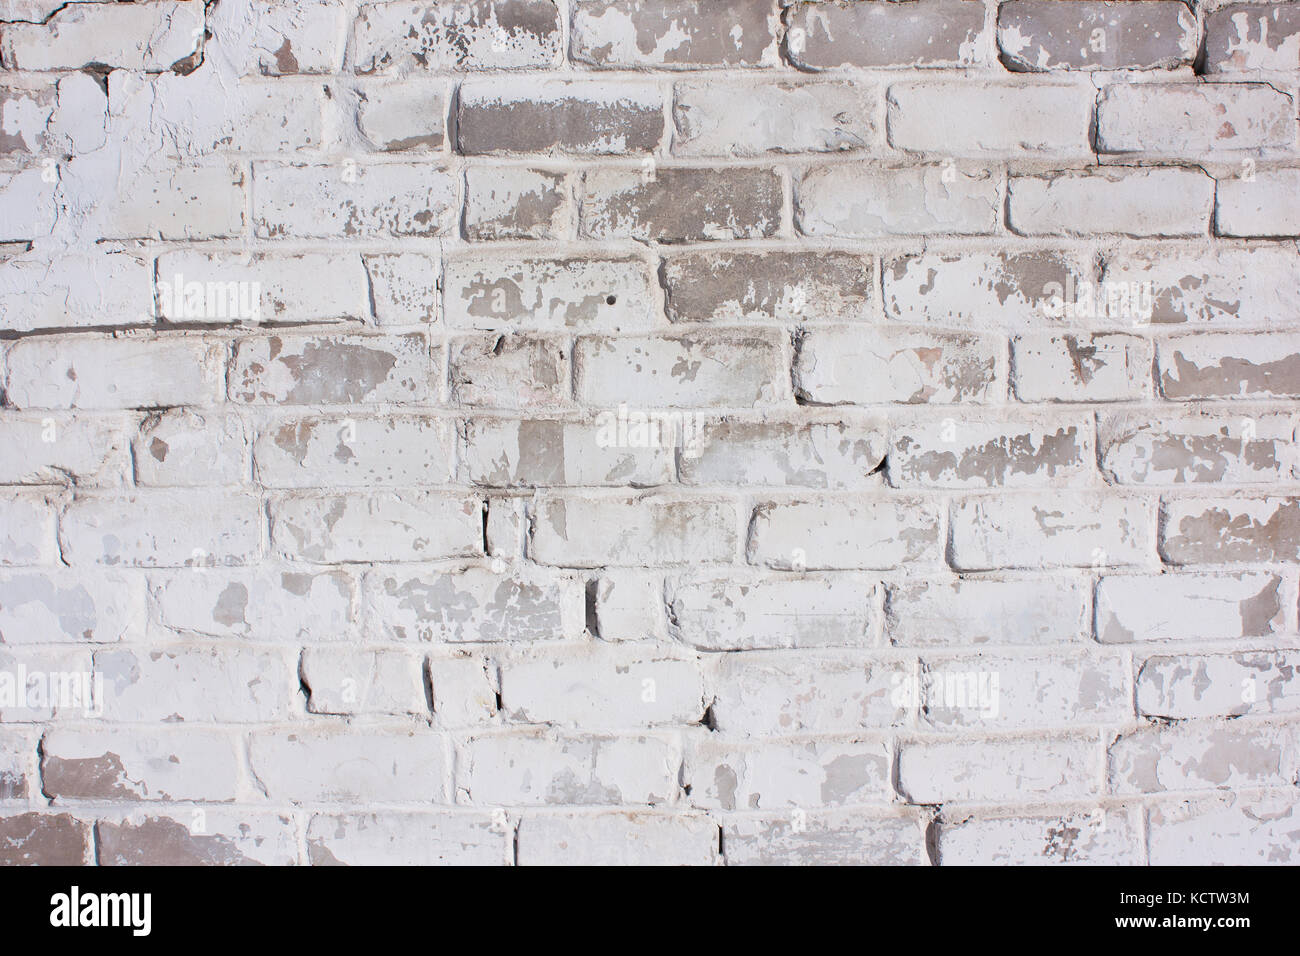 White Brick Background Rustic Old Painted Texture Facade Of The House A Fence Wall Stone